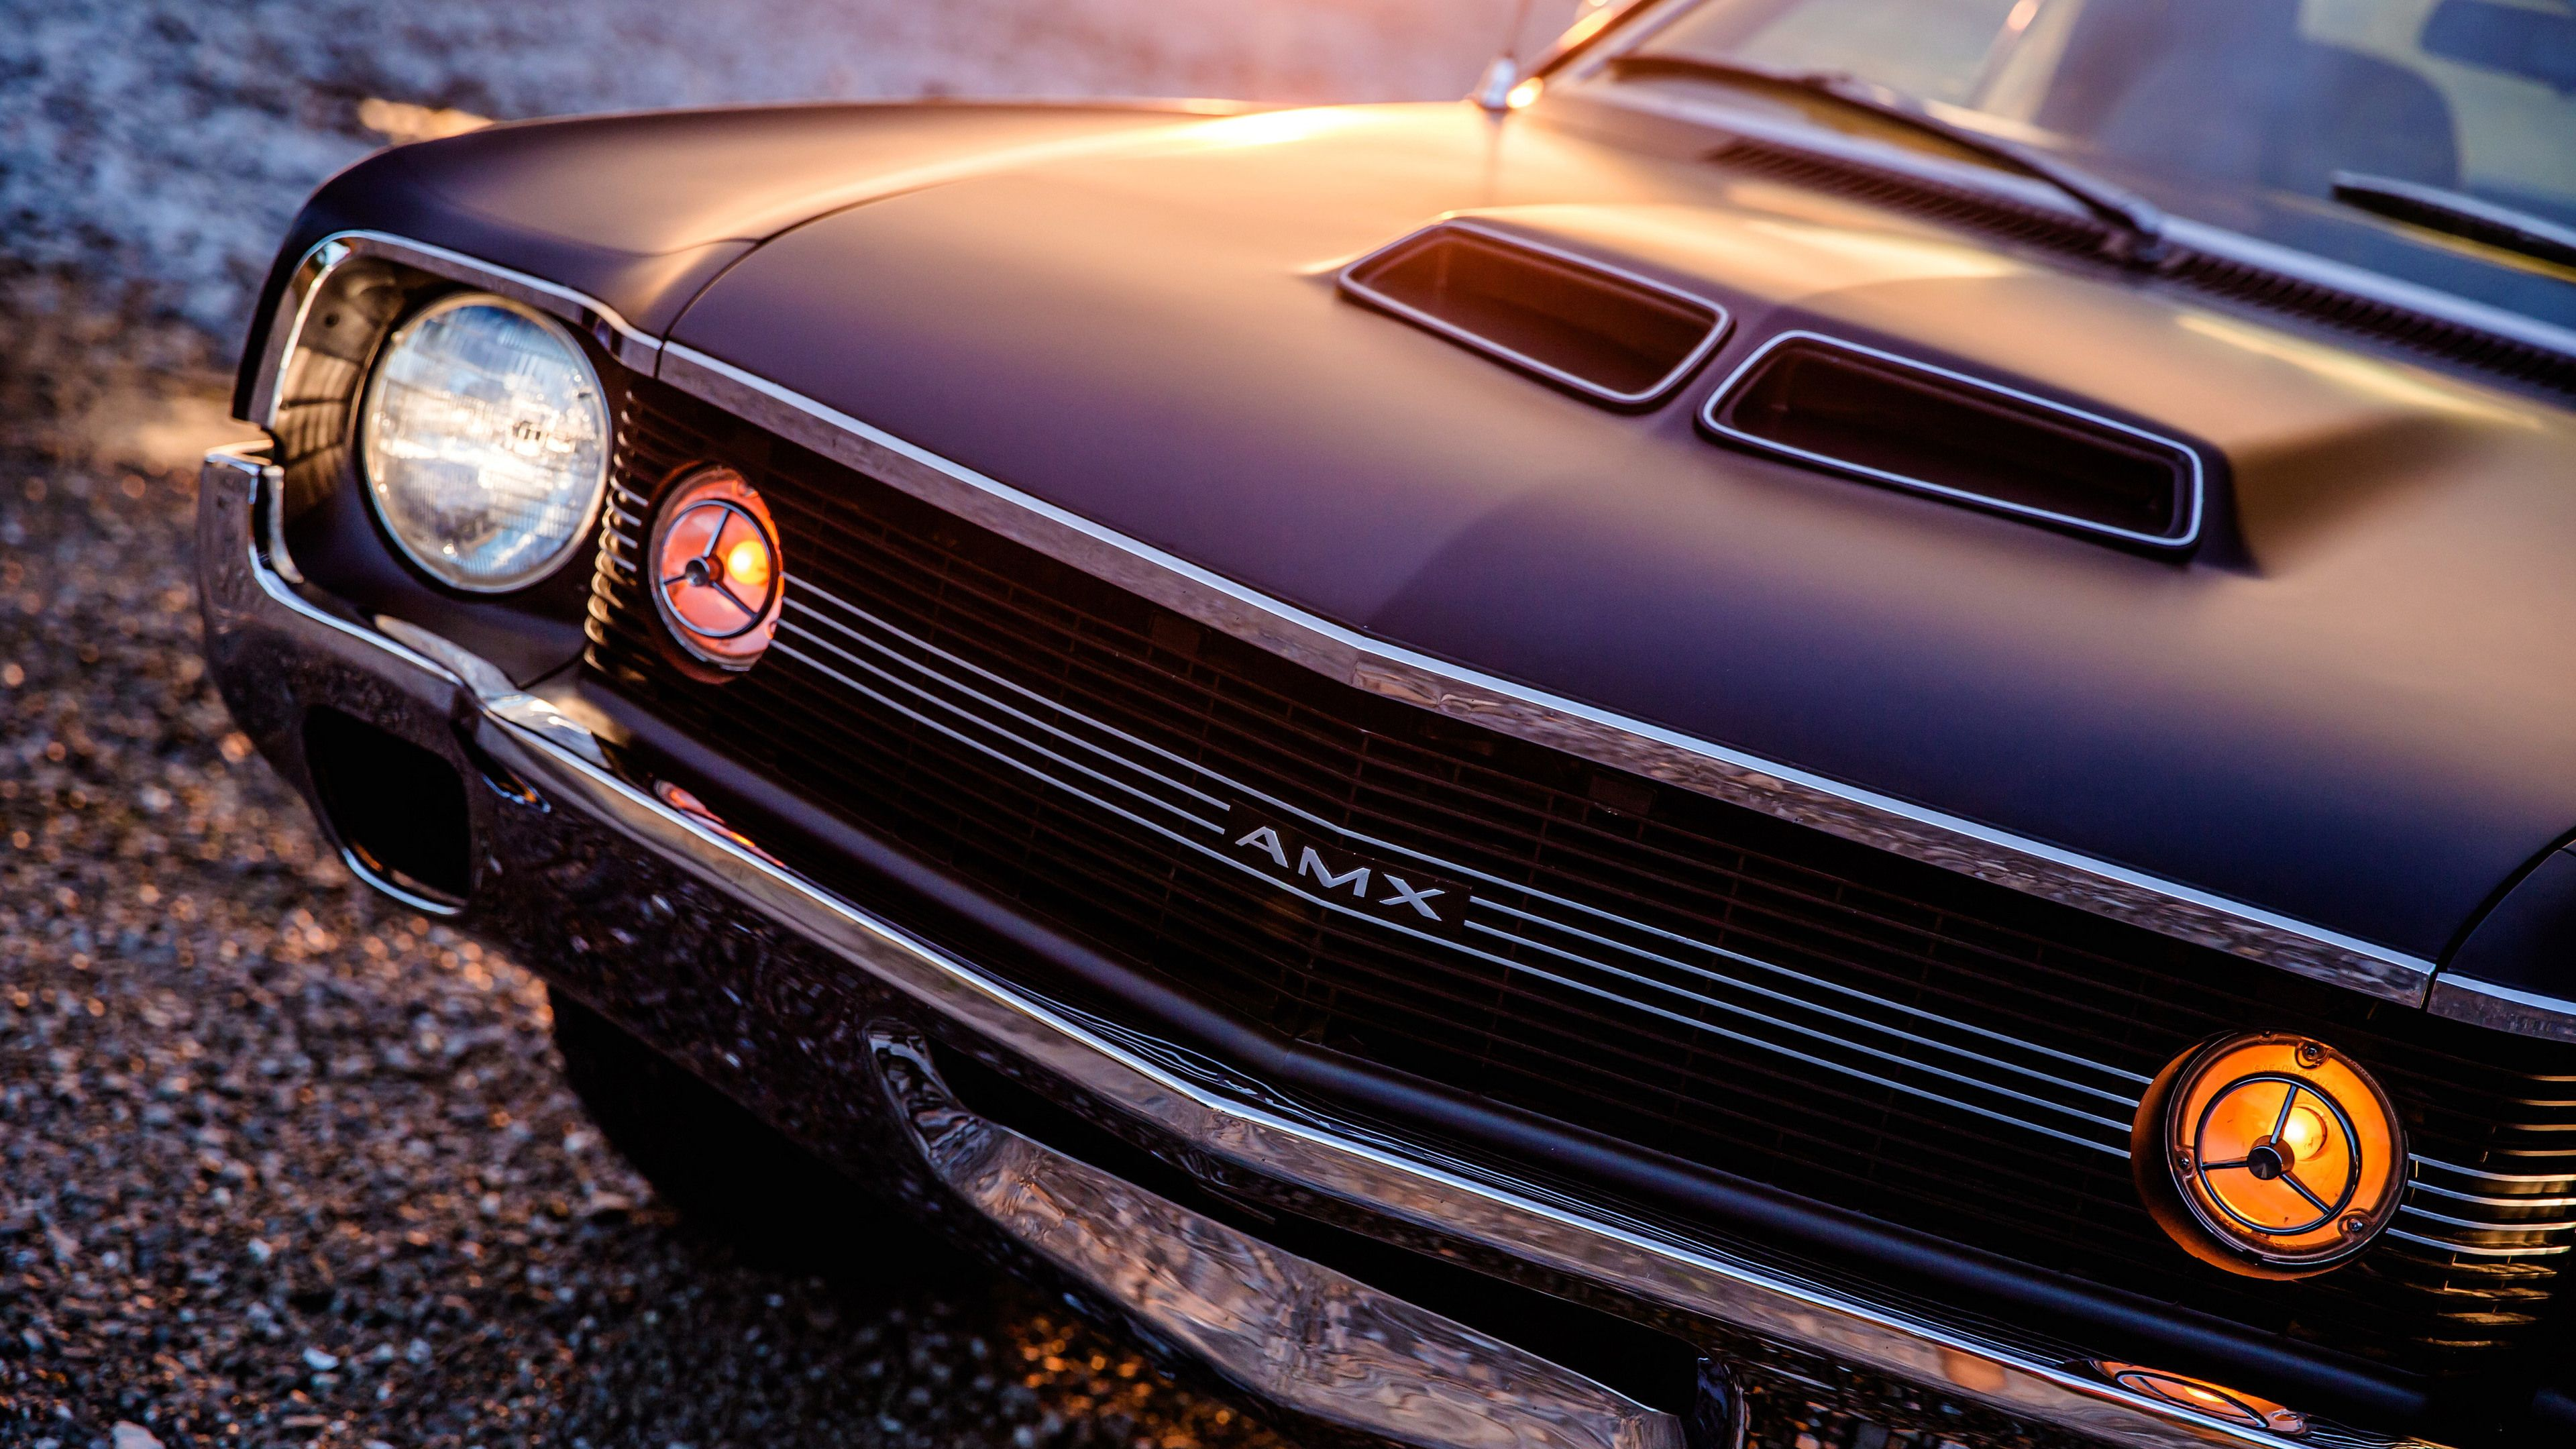 1970 Amc Amx 4k Vintage Wallpapers Hd Wallpapers Cars Wallpapers 4k Wallpapers Car Headlights Car Wallpapers Car